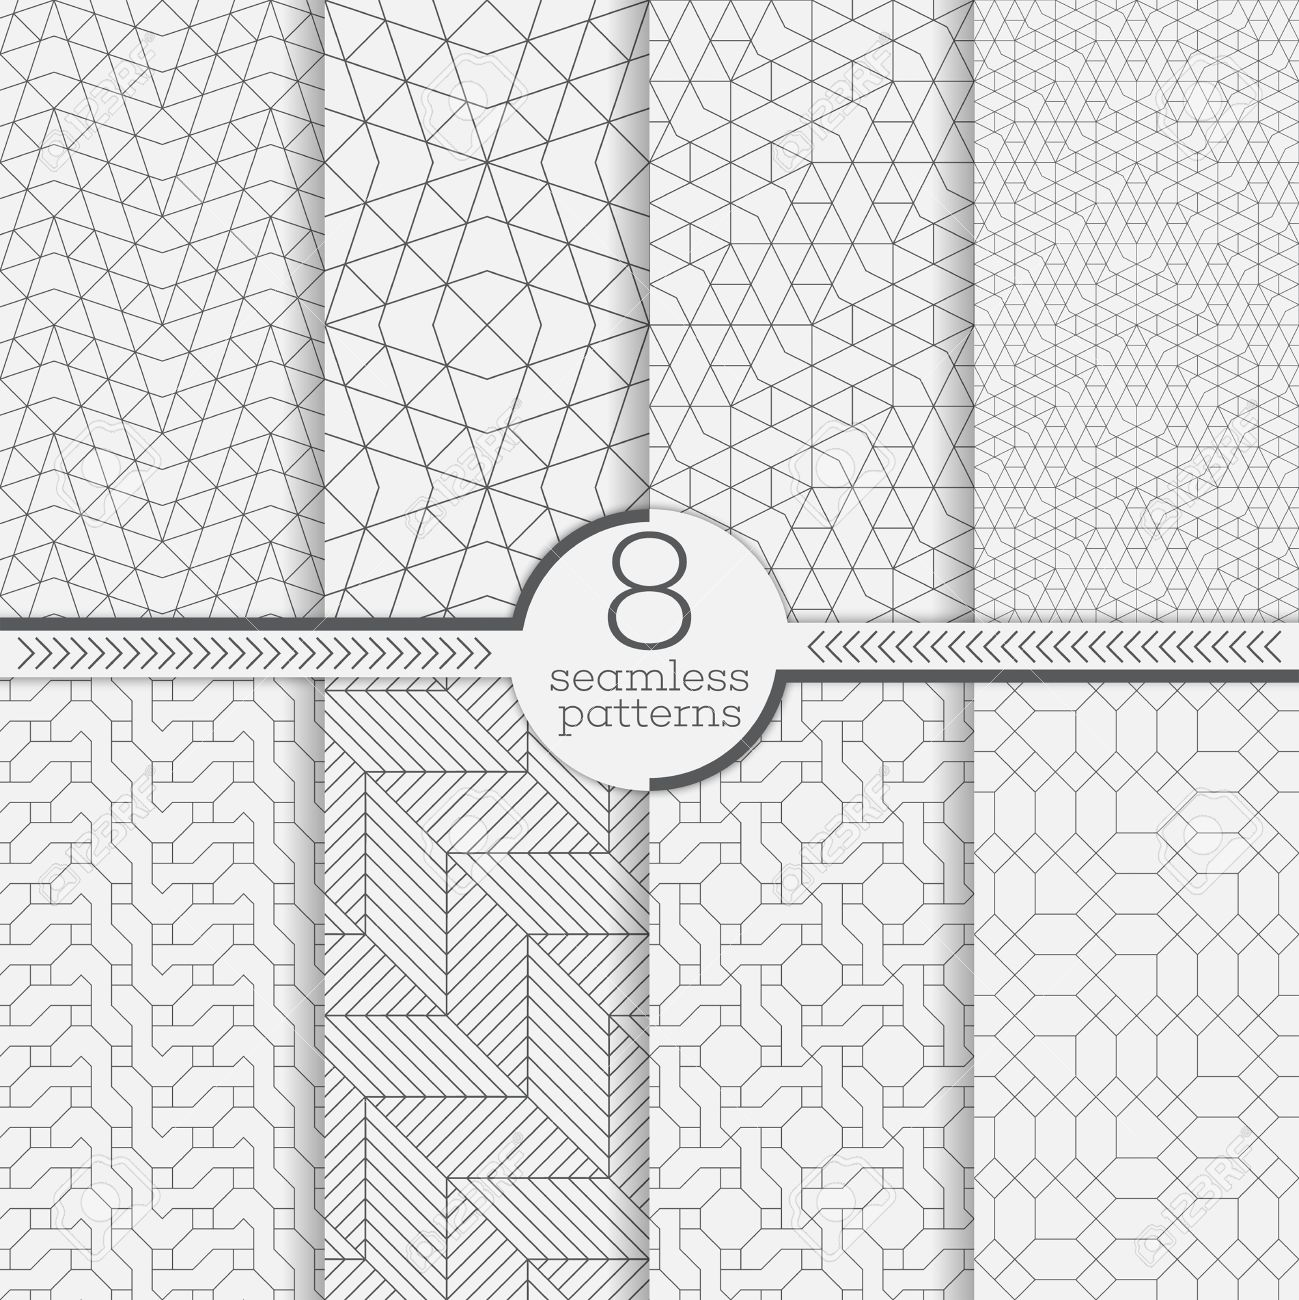 Set of seamless patterns. Modern stylish textures. Abstract geometrical background. Original linear texture with repeating thin broken lines, polygons, difficult polygonal shapes - 53613433